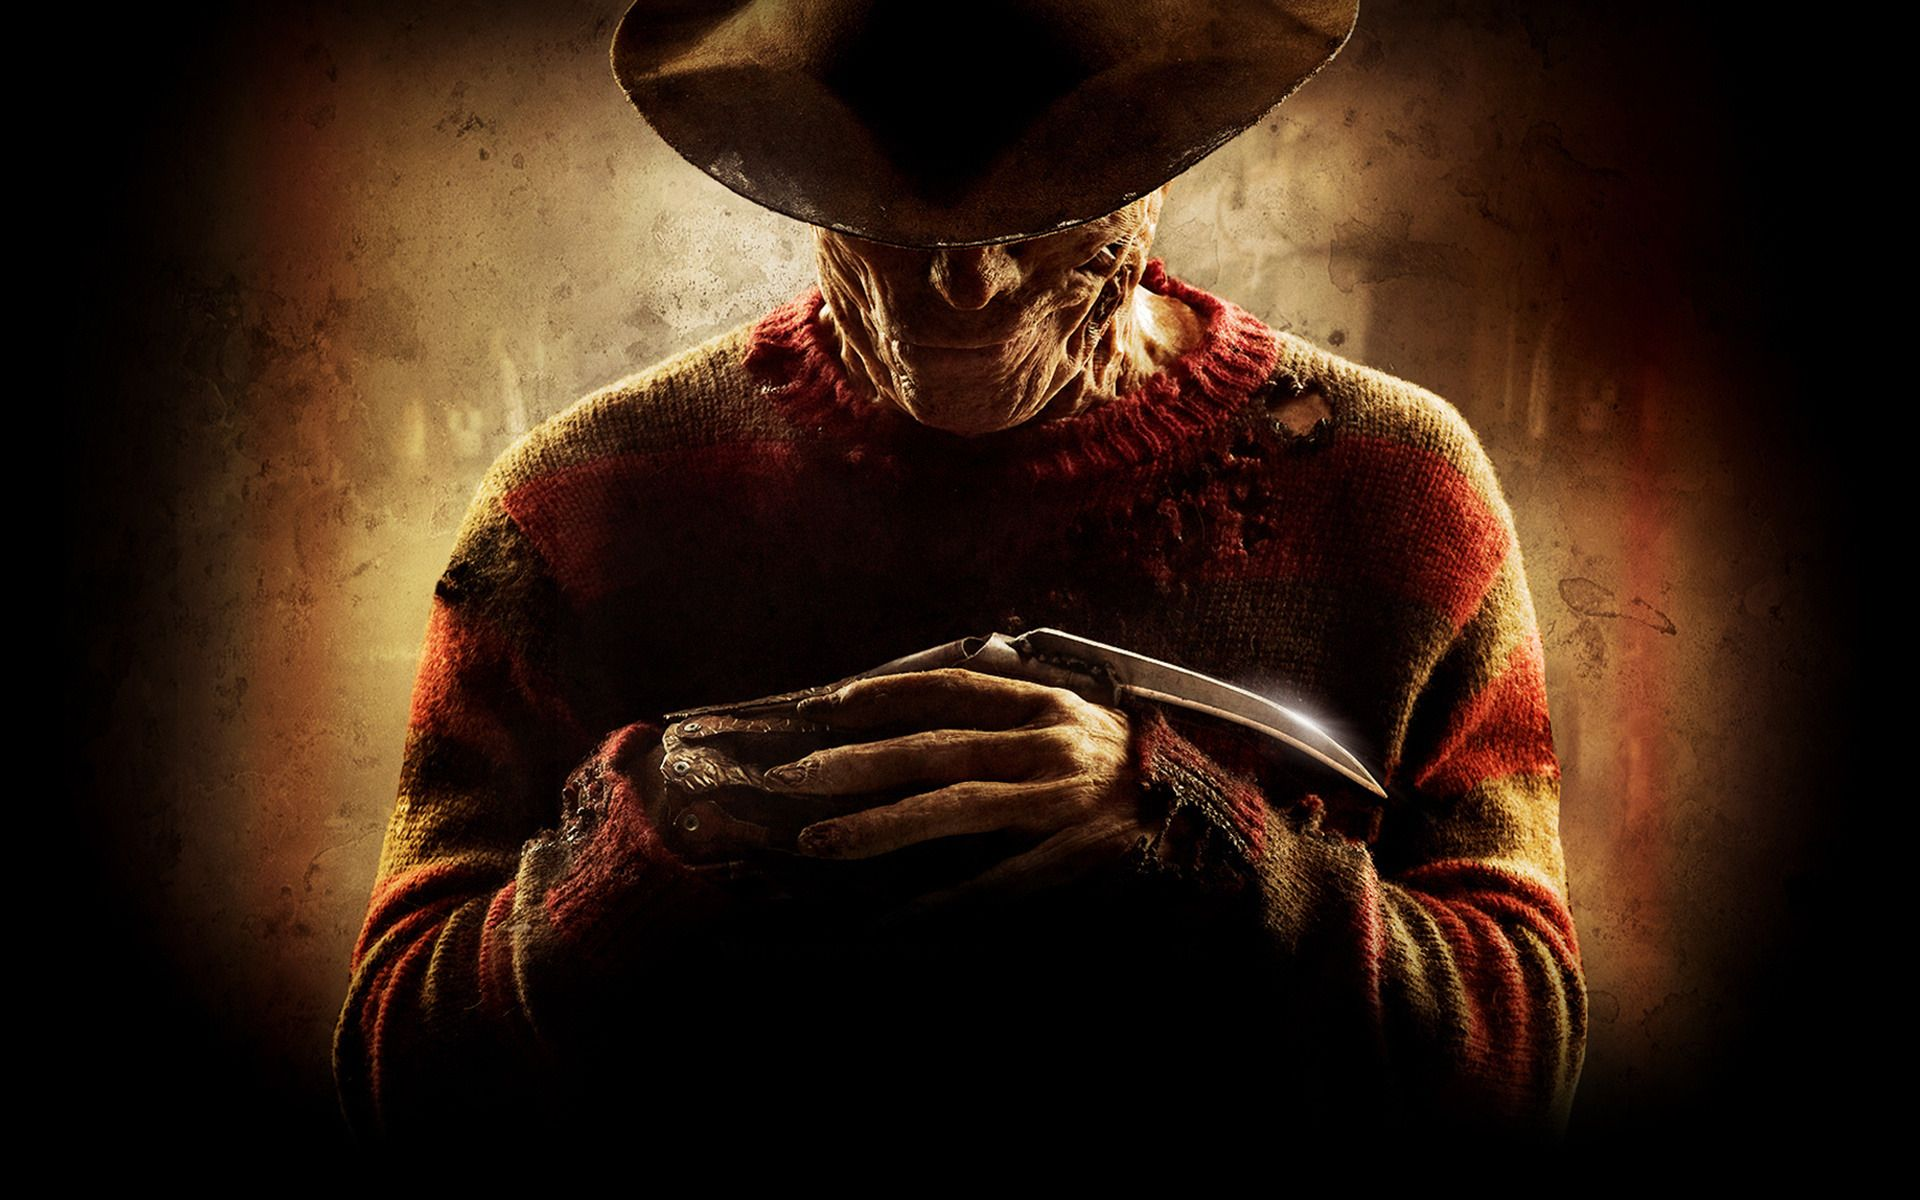 freddy krueger desktop hd wallpaper 54434